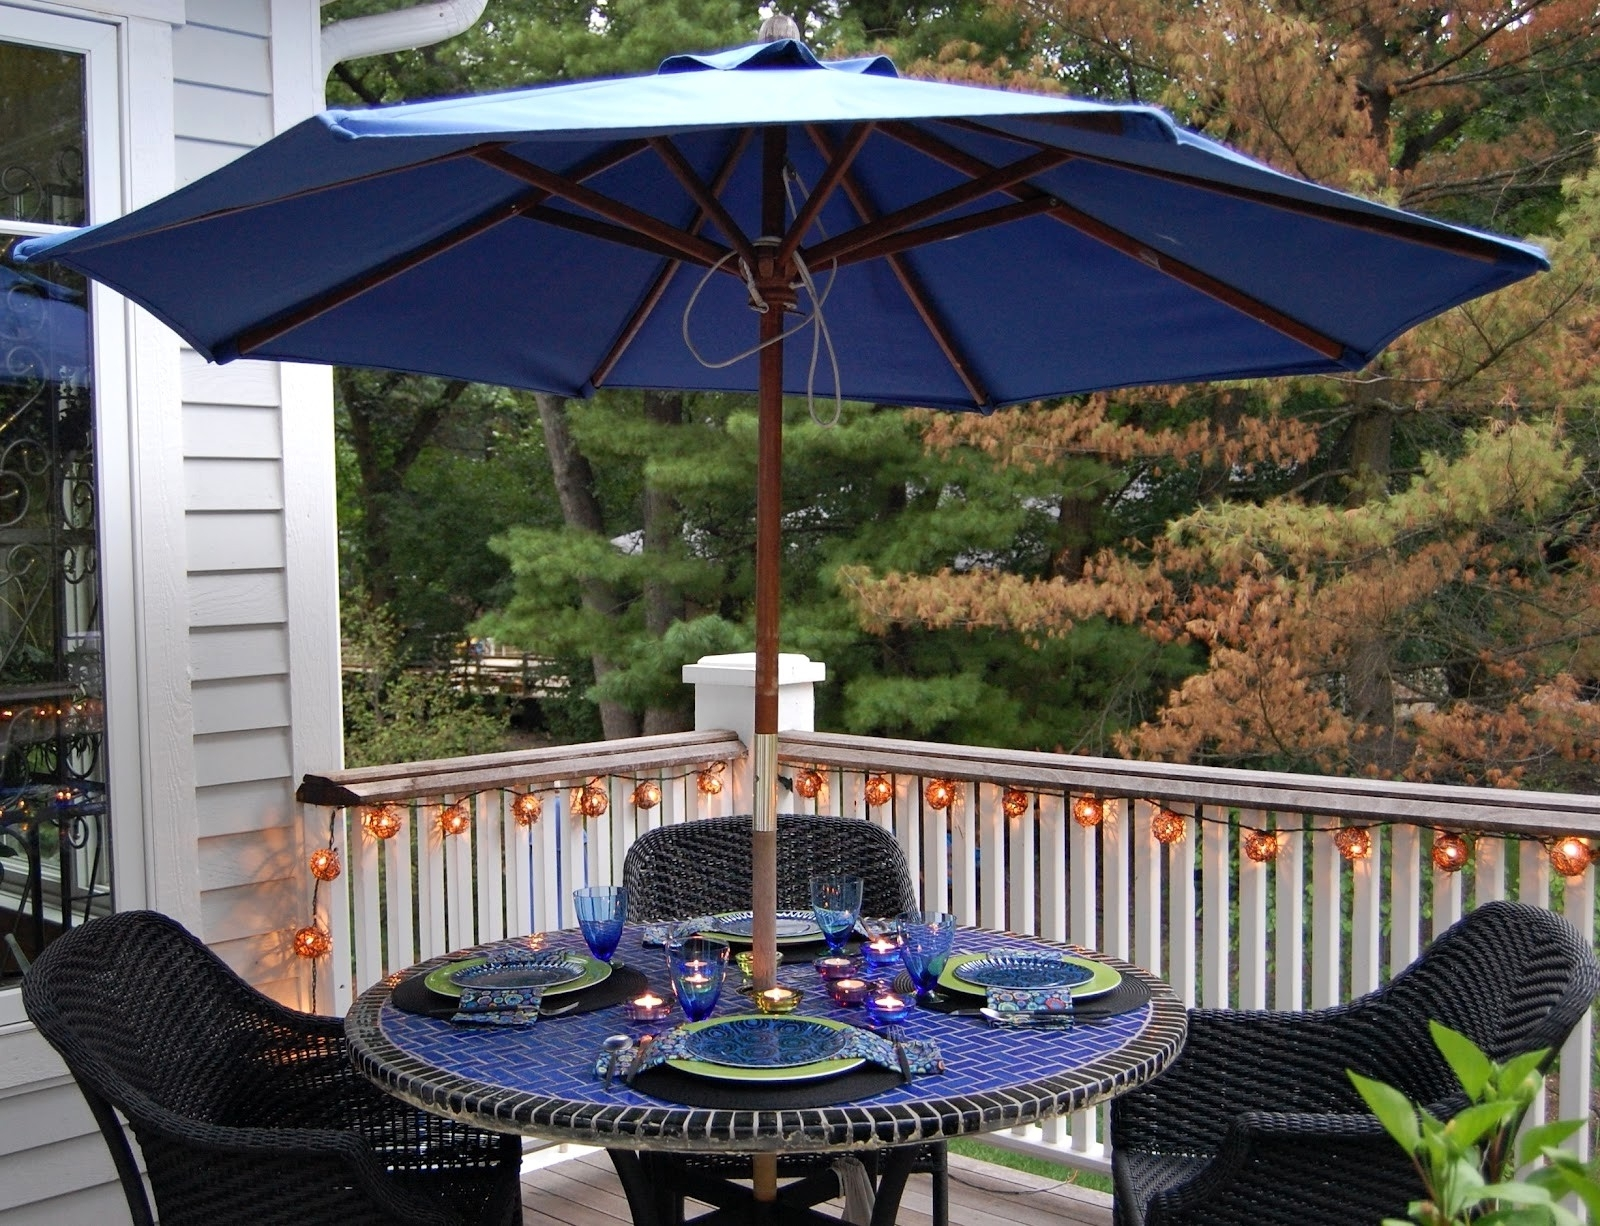 Free Standing Umbrellas For Patio With Well Known Patio Furniture Sets With Umbrella Treasure Garden Outdoor Costco (Gallery 8 of 20)